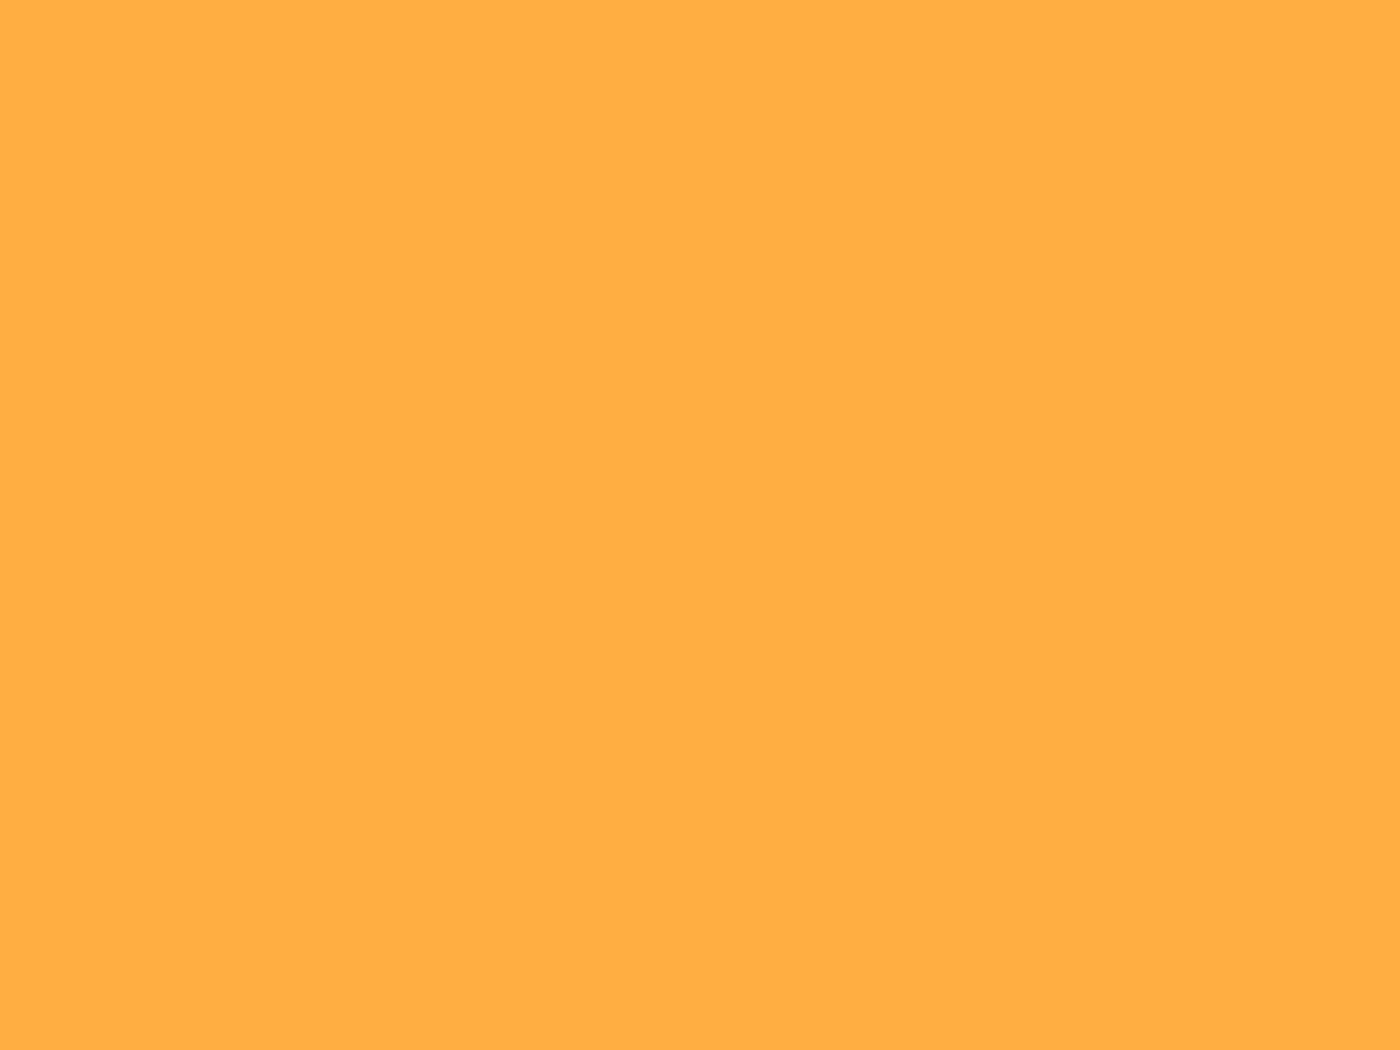 1400x1050 Yellow Orange Solid Color Background